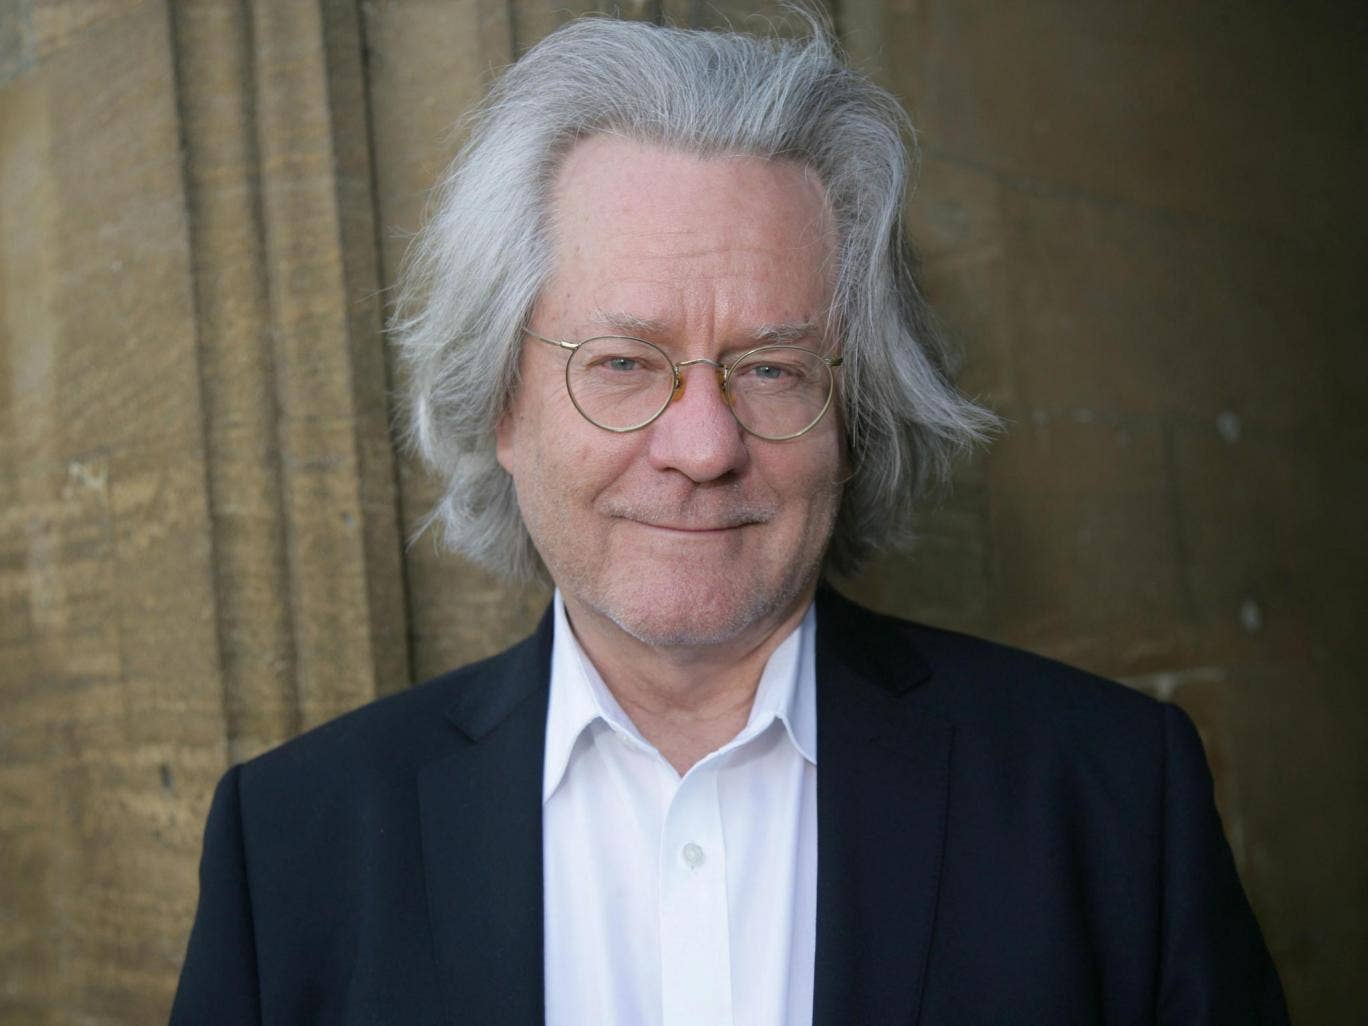 Philosopher Professor AC Grayling is master of the New College of the Humanities